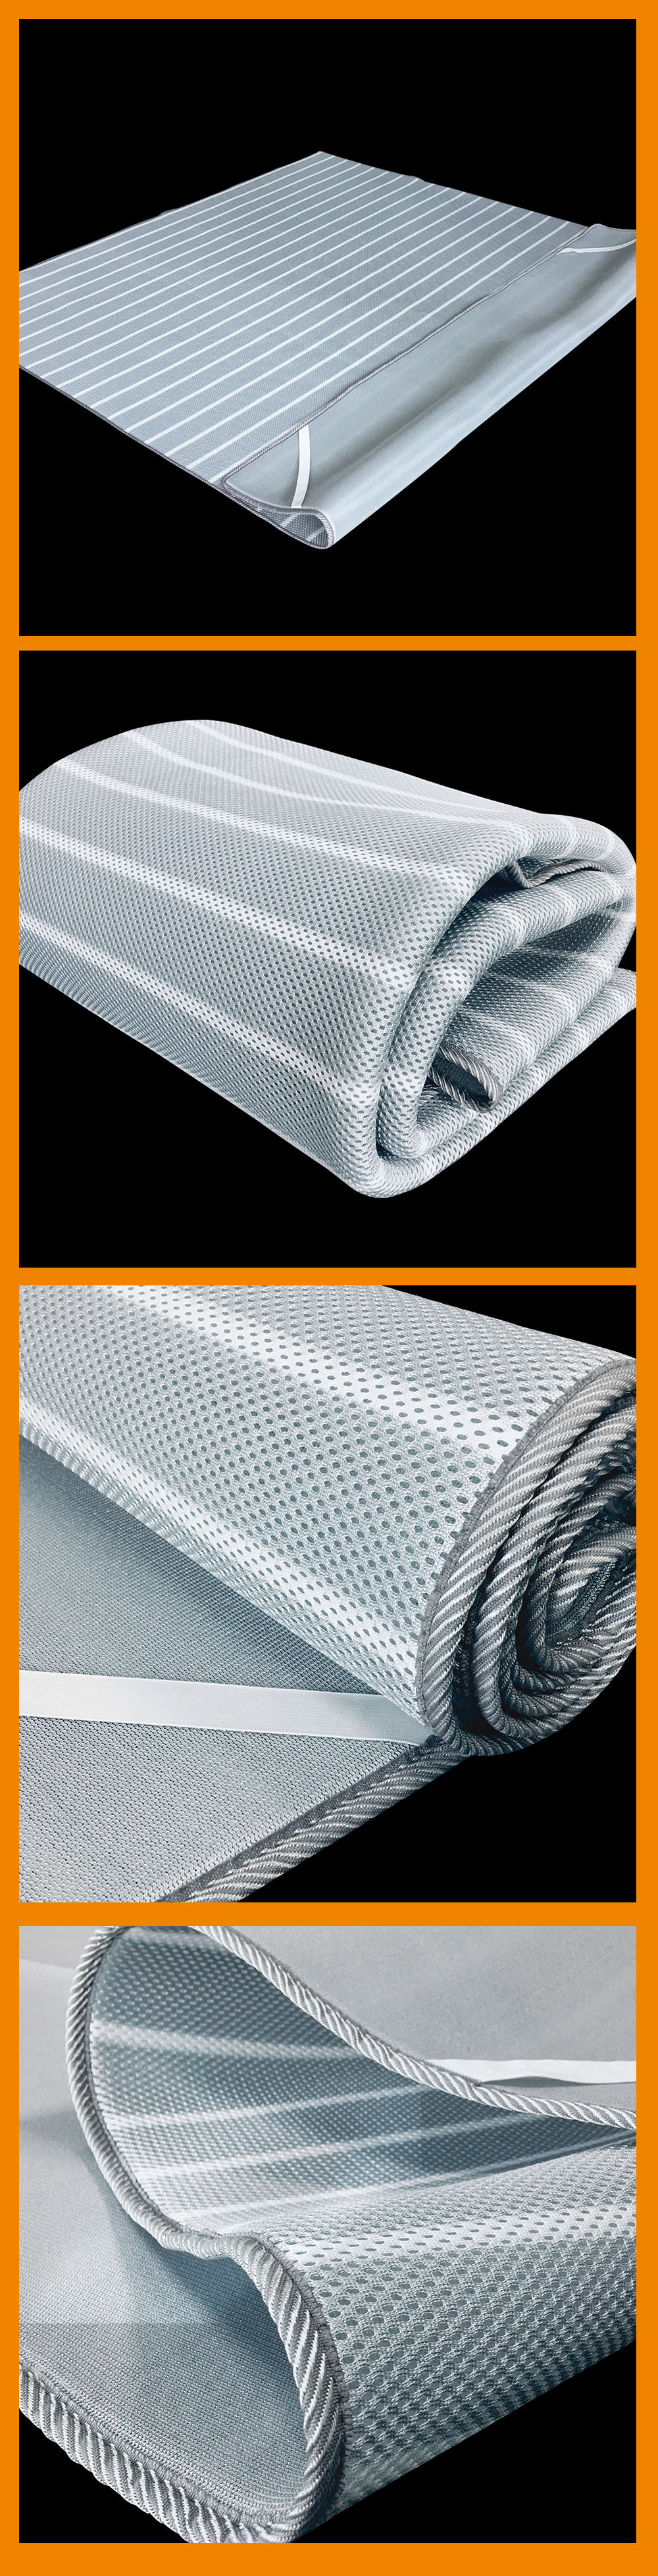 Popular light gray foldable 3d mesh spacer cooling breathable mattress bed topper pad